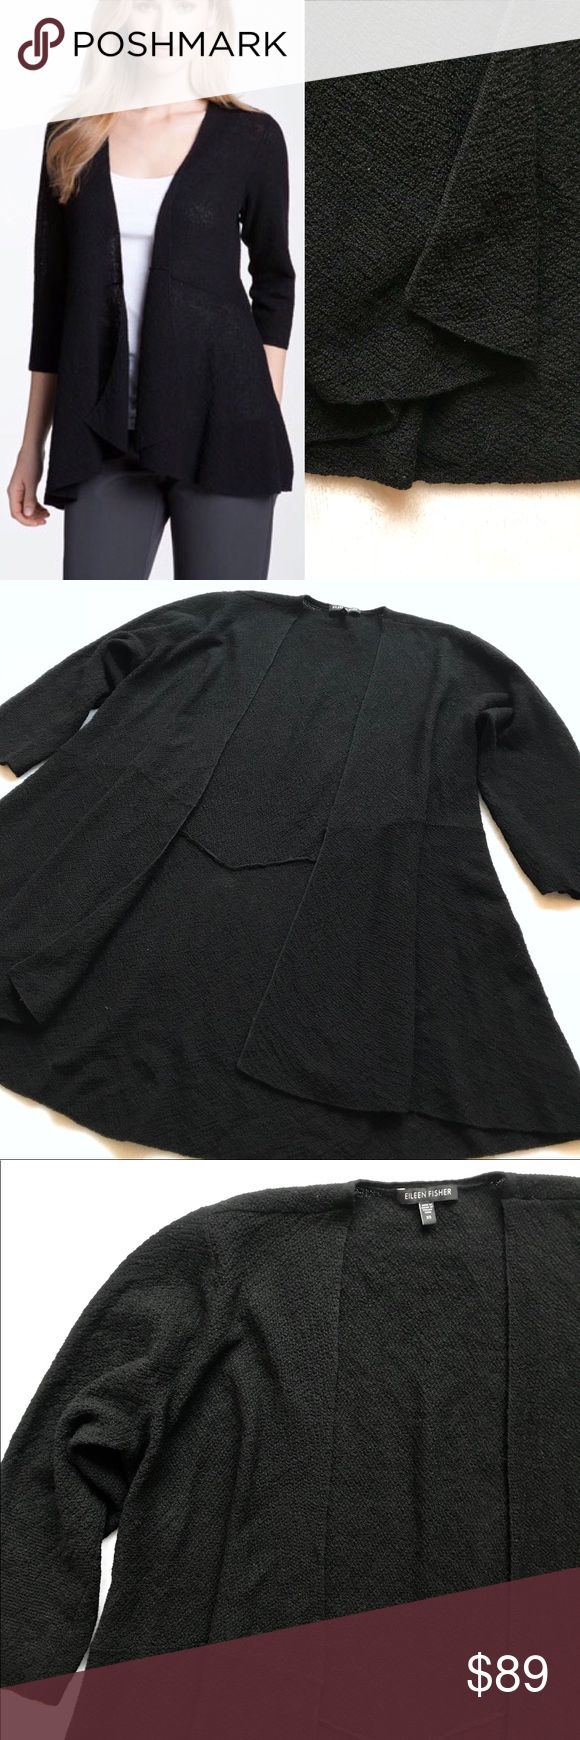 LIKE NEW Eileen Fisher Fine Wool Open Cardigan XS LIKE NEW Eileen Fisher Open Front Fine Wool Cardigan. Size XS. Color: Black. Slightly sheer, textured knit of fine wool yarns defines versatile cardigan shaped for feminine fit. Seamed Waist. Light, flattering, doesn't cling. Drape front. Long sleeves. 100% Wool. Can be worn by many sizes! Loose/relaxed for Small. Figure flattering for Large (I'm L/XL, and I like the fitted feel w/ seamed waist). LIKE NEW, worn once briefly! Approx…